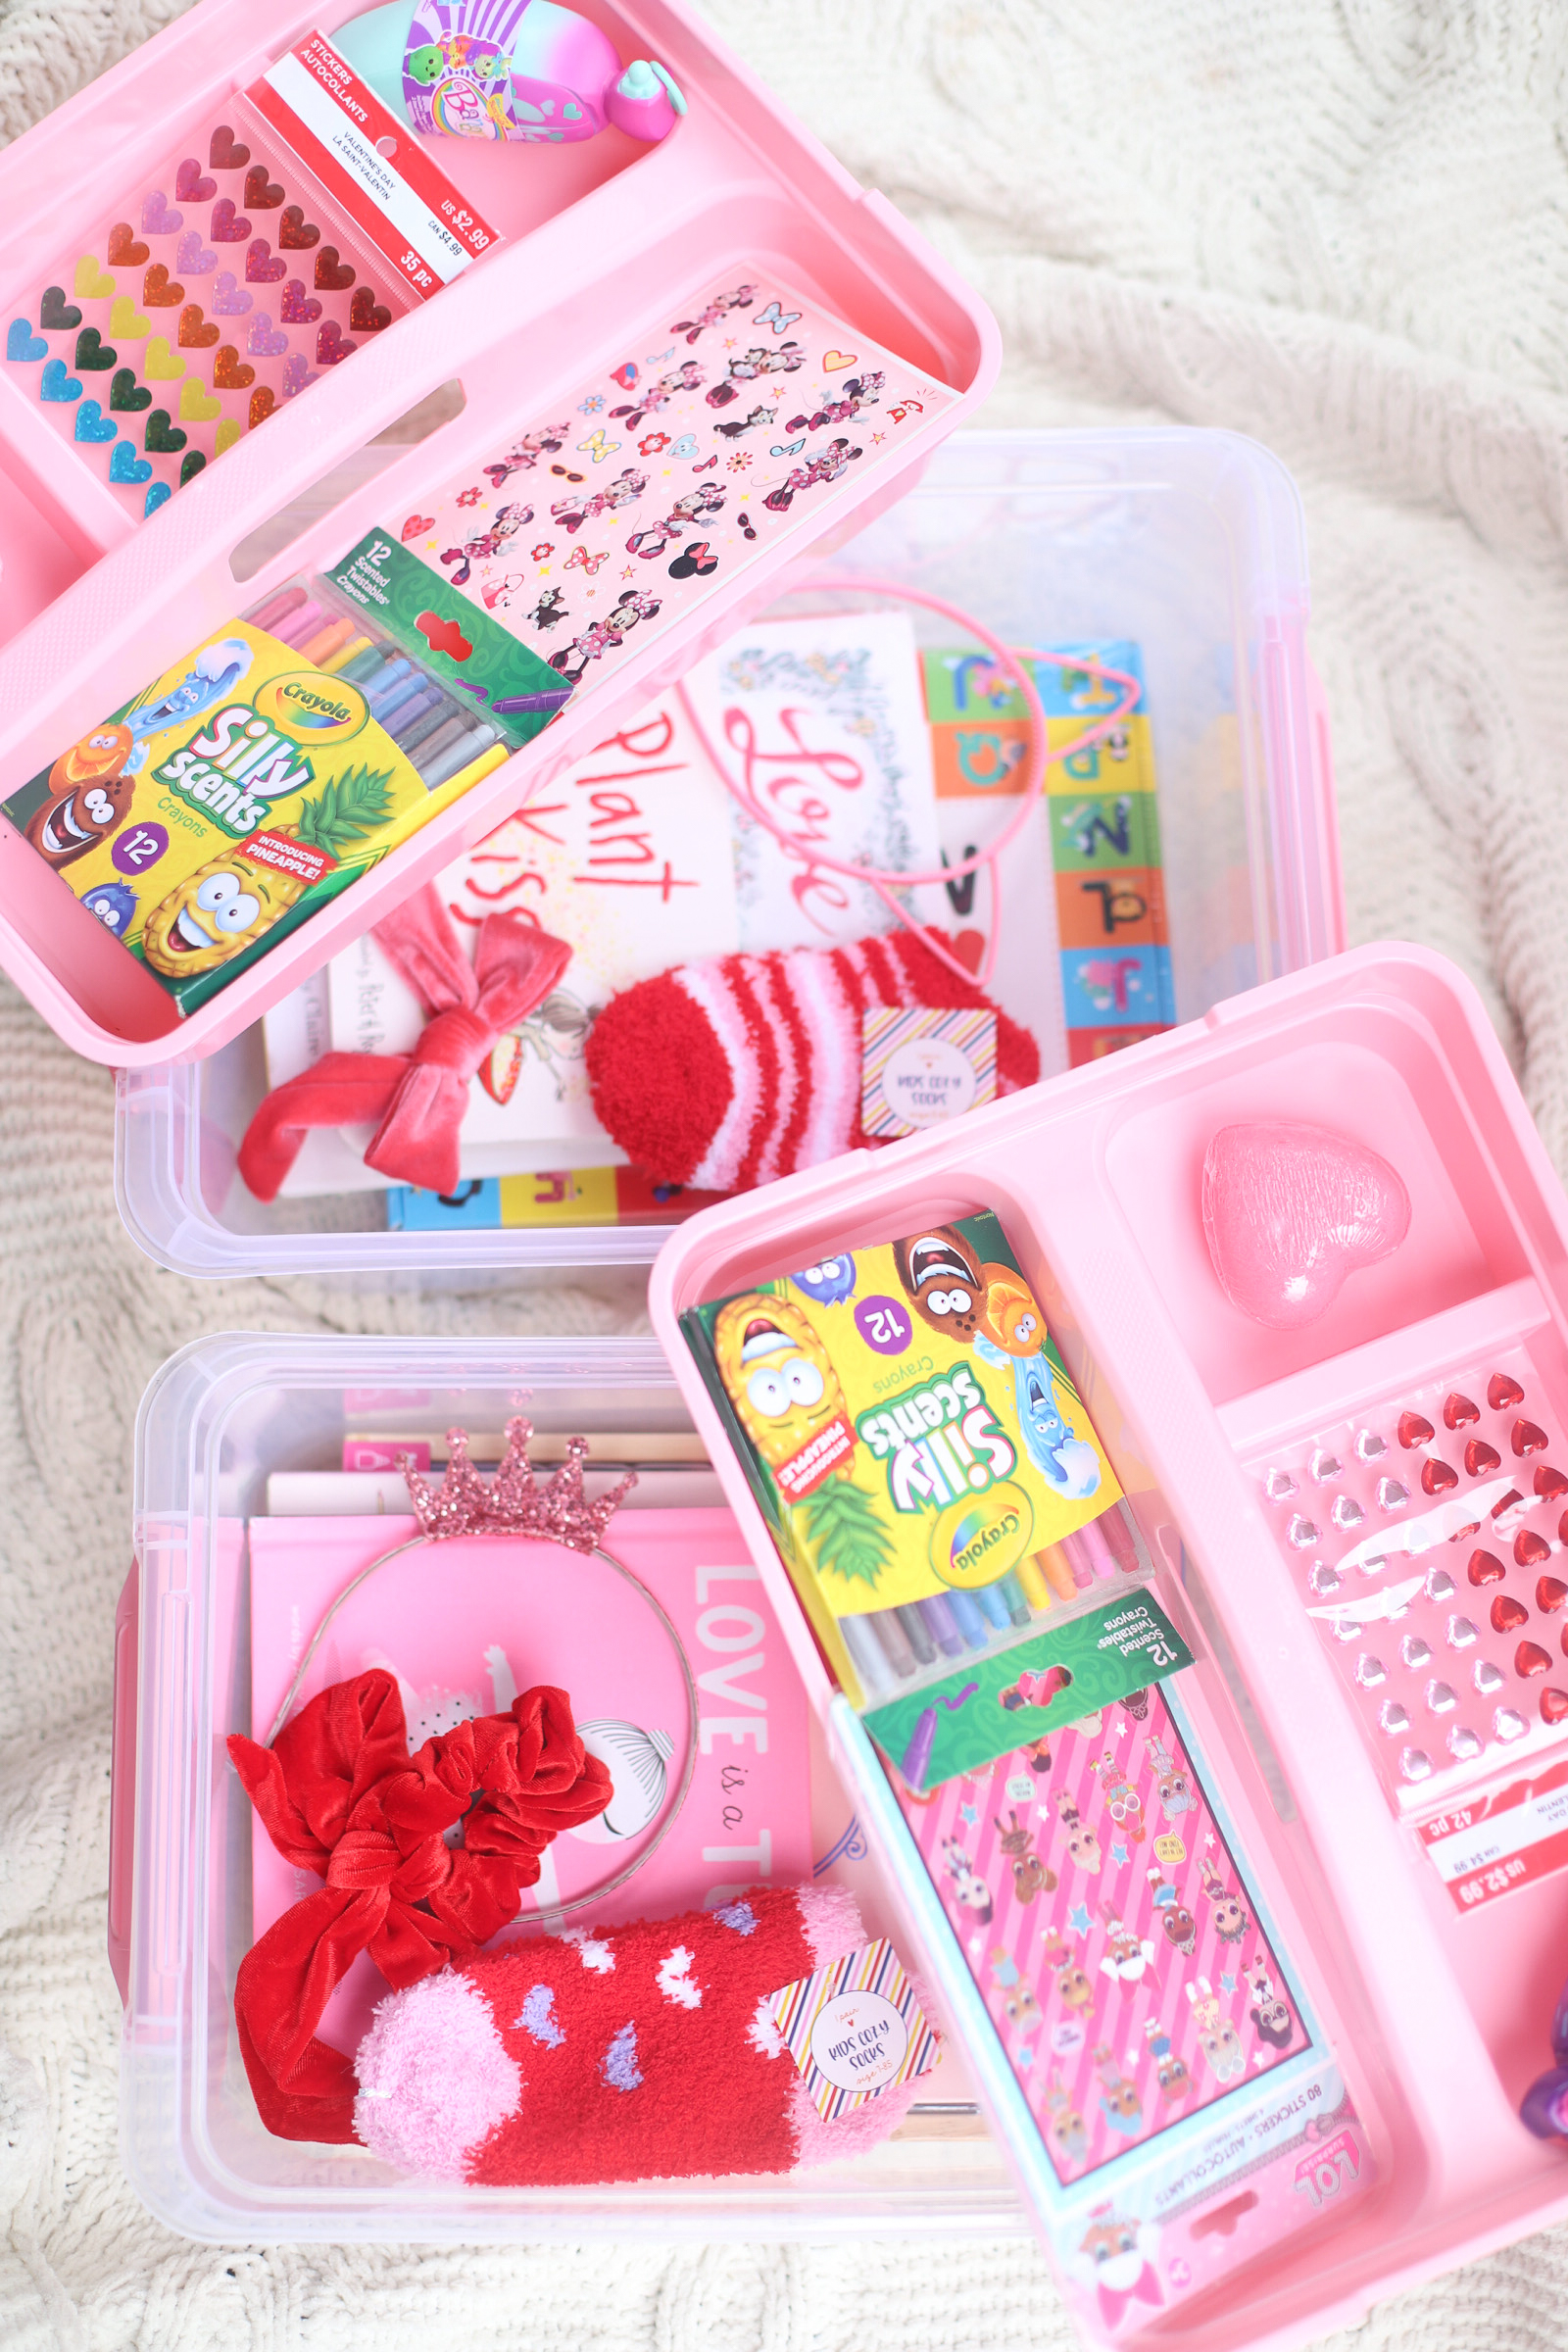 Put together the cutest DIY Valentine's Day Kids Gift Basket in a super functional storage box that your kids can use again and again for holding their crafts, school supplies, and more! Using the most amazing Latchmate Storage Boxes. | glitterinc.com | @glitterinc